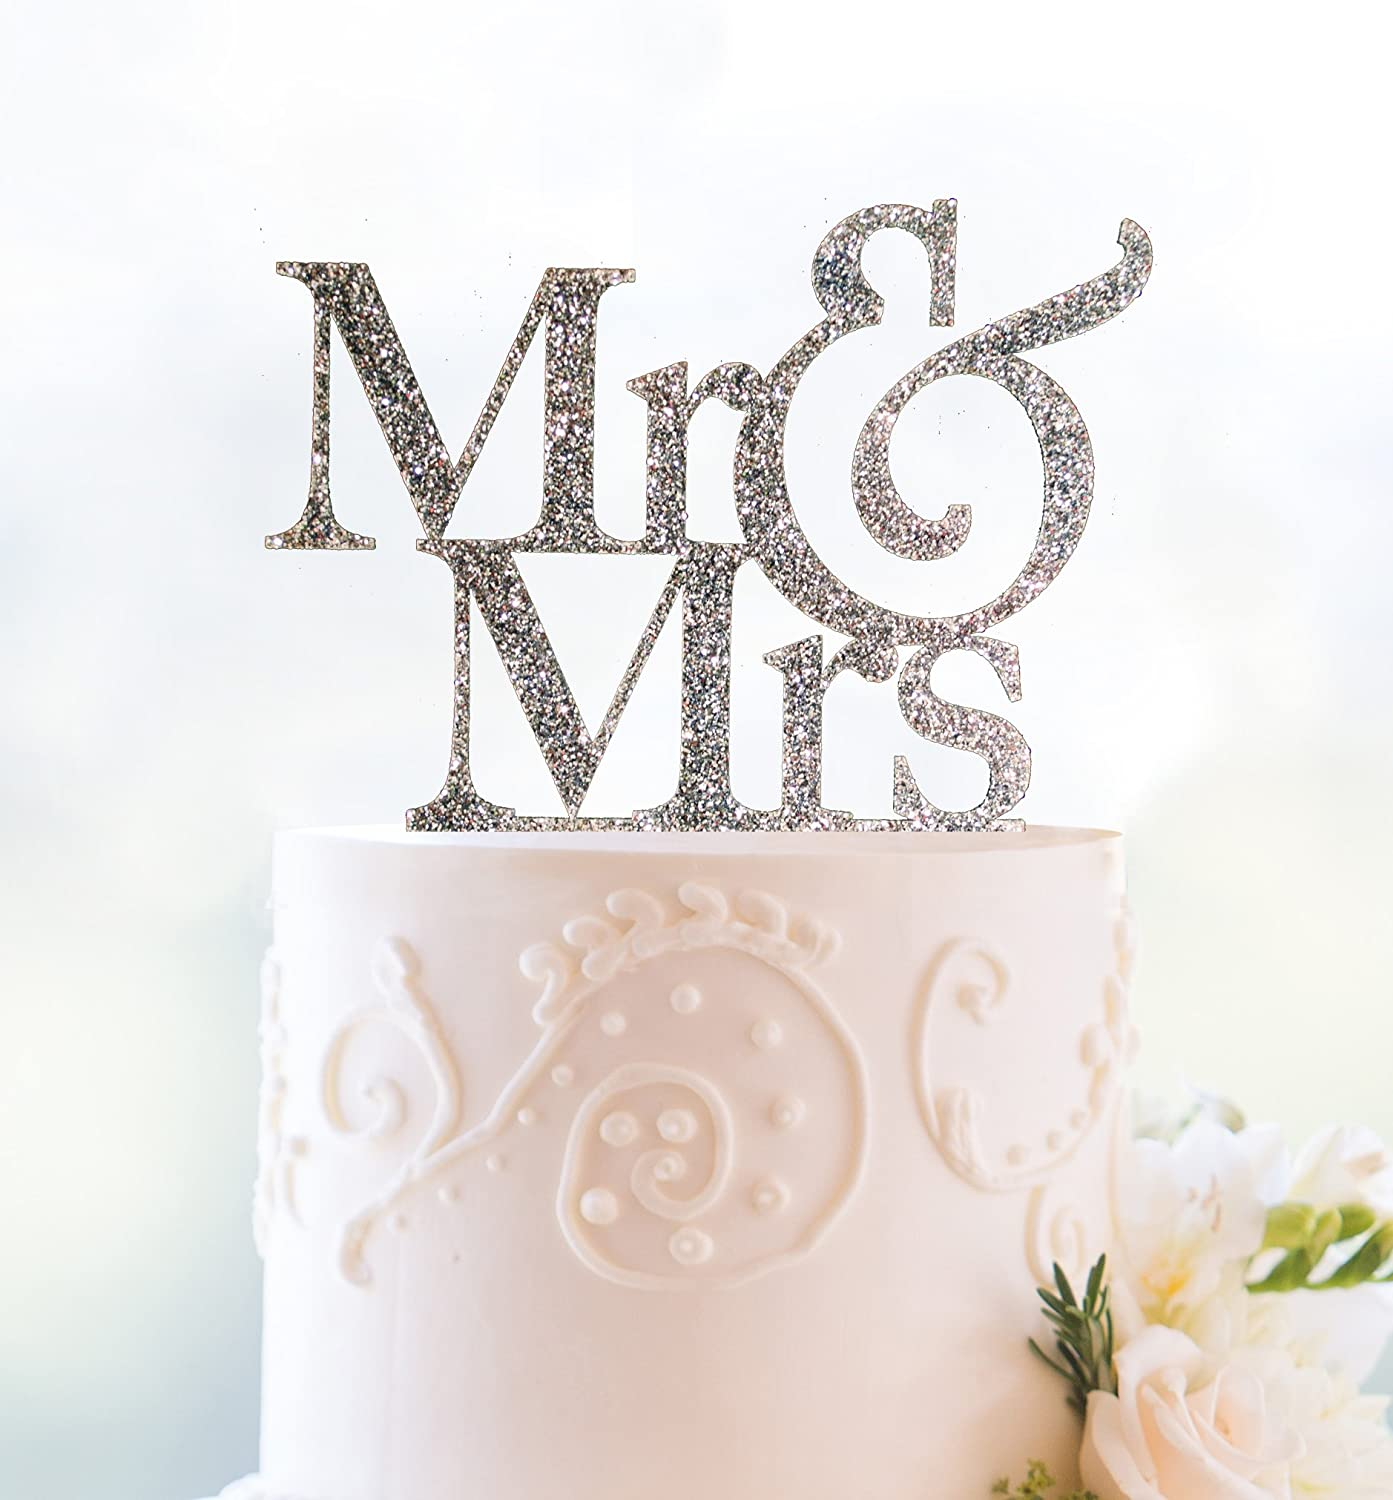 Amazon.com: Silver Glitter Mr and Mrs Cake Topper: Kitchen & Dining